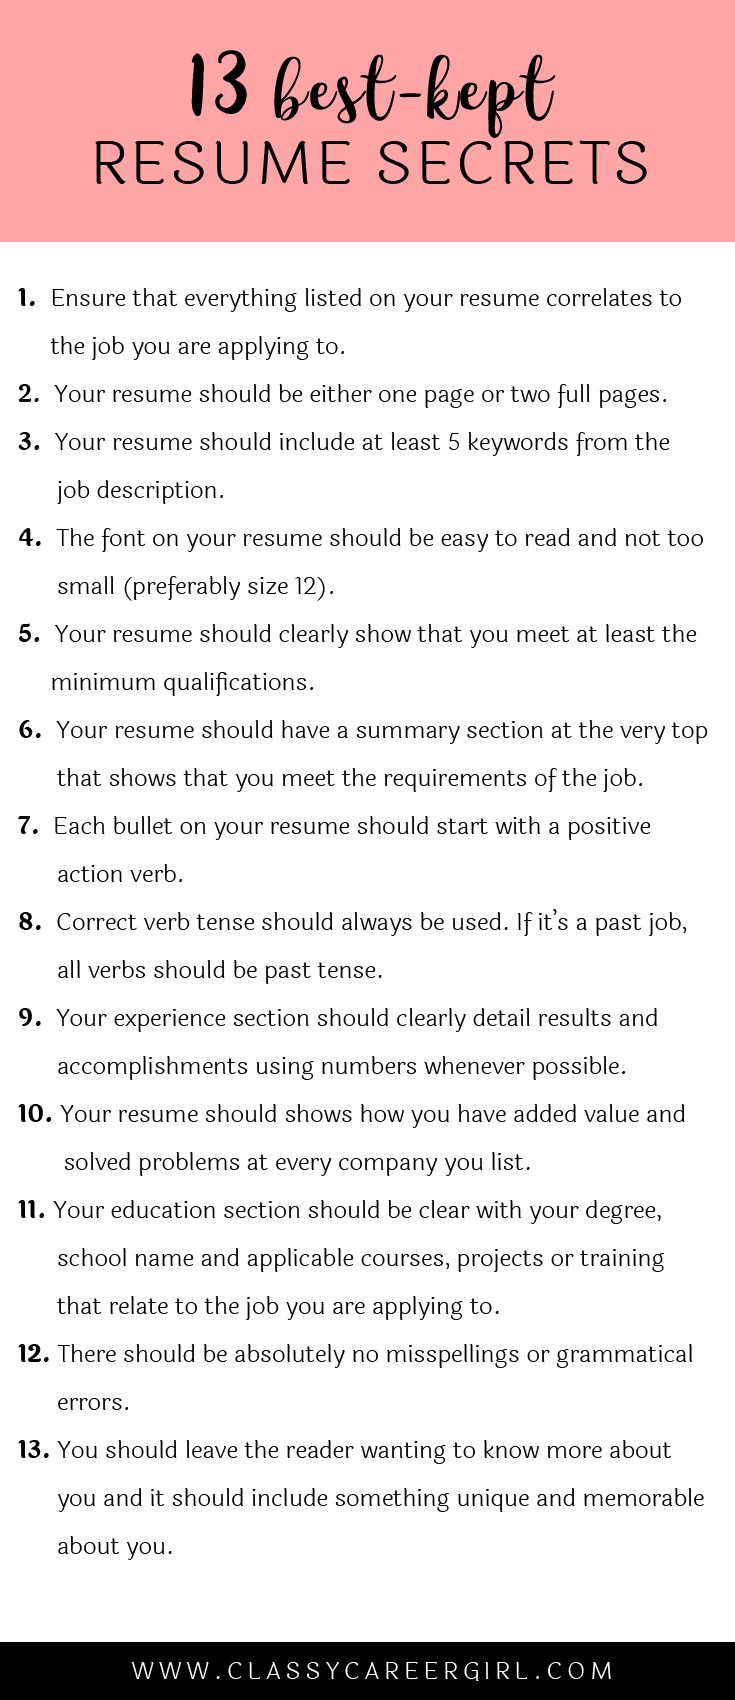 Picnictoimpeachus  Unique  Ideas About Resume On Pinterest  Cv Format Resume Cv And  With Lovely Some Hiring Managers Will Toss Your Resume Out If You Dont Know These  With Beautiful Resume For Property Manager Also College Resume Outline In Addition Resume For Marketing And Combination Resumes As Well As Human Resources Sample Resume Additionally Job Description On Resume From Pinterestcom With Picnictoimpeachus  Lovely  Ideas About Resume On Pinterest  Cv Format Resume Cv And  With Beautiful Some Hiring Managers Will Toss Your Resume Out If You Dont Know These  And Unique Resume For Property Manager Also College Resume Outline In Addition Resume For Marketing From Pinterestcom